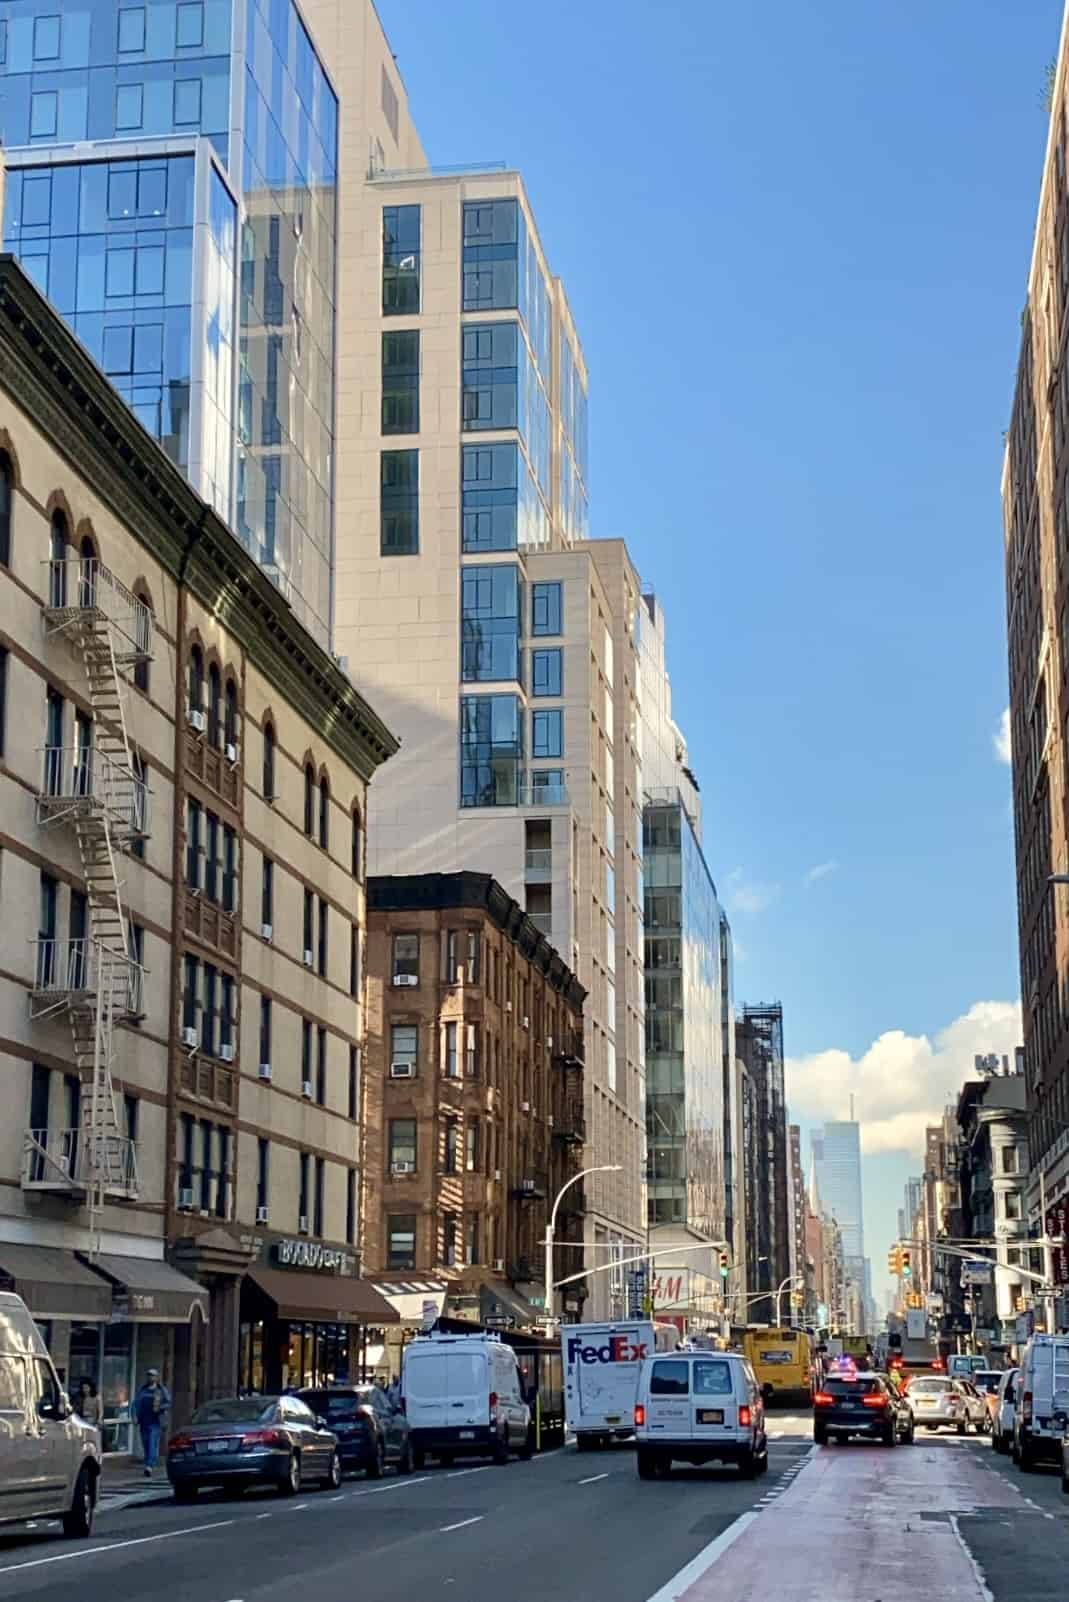 Upper East Side hotel and buildings